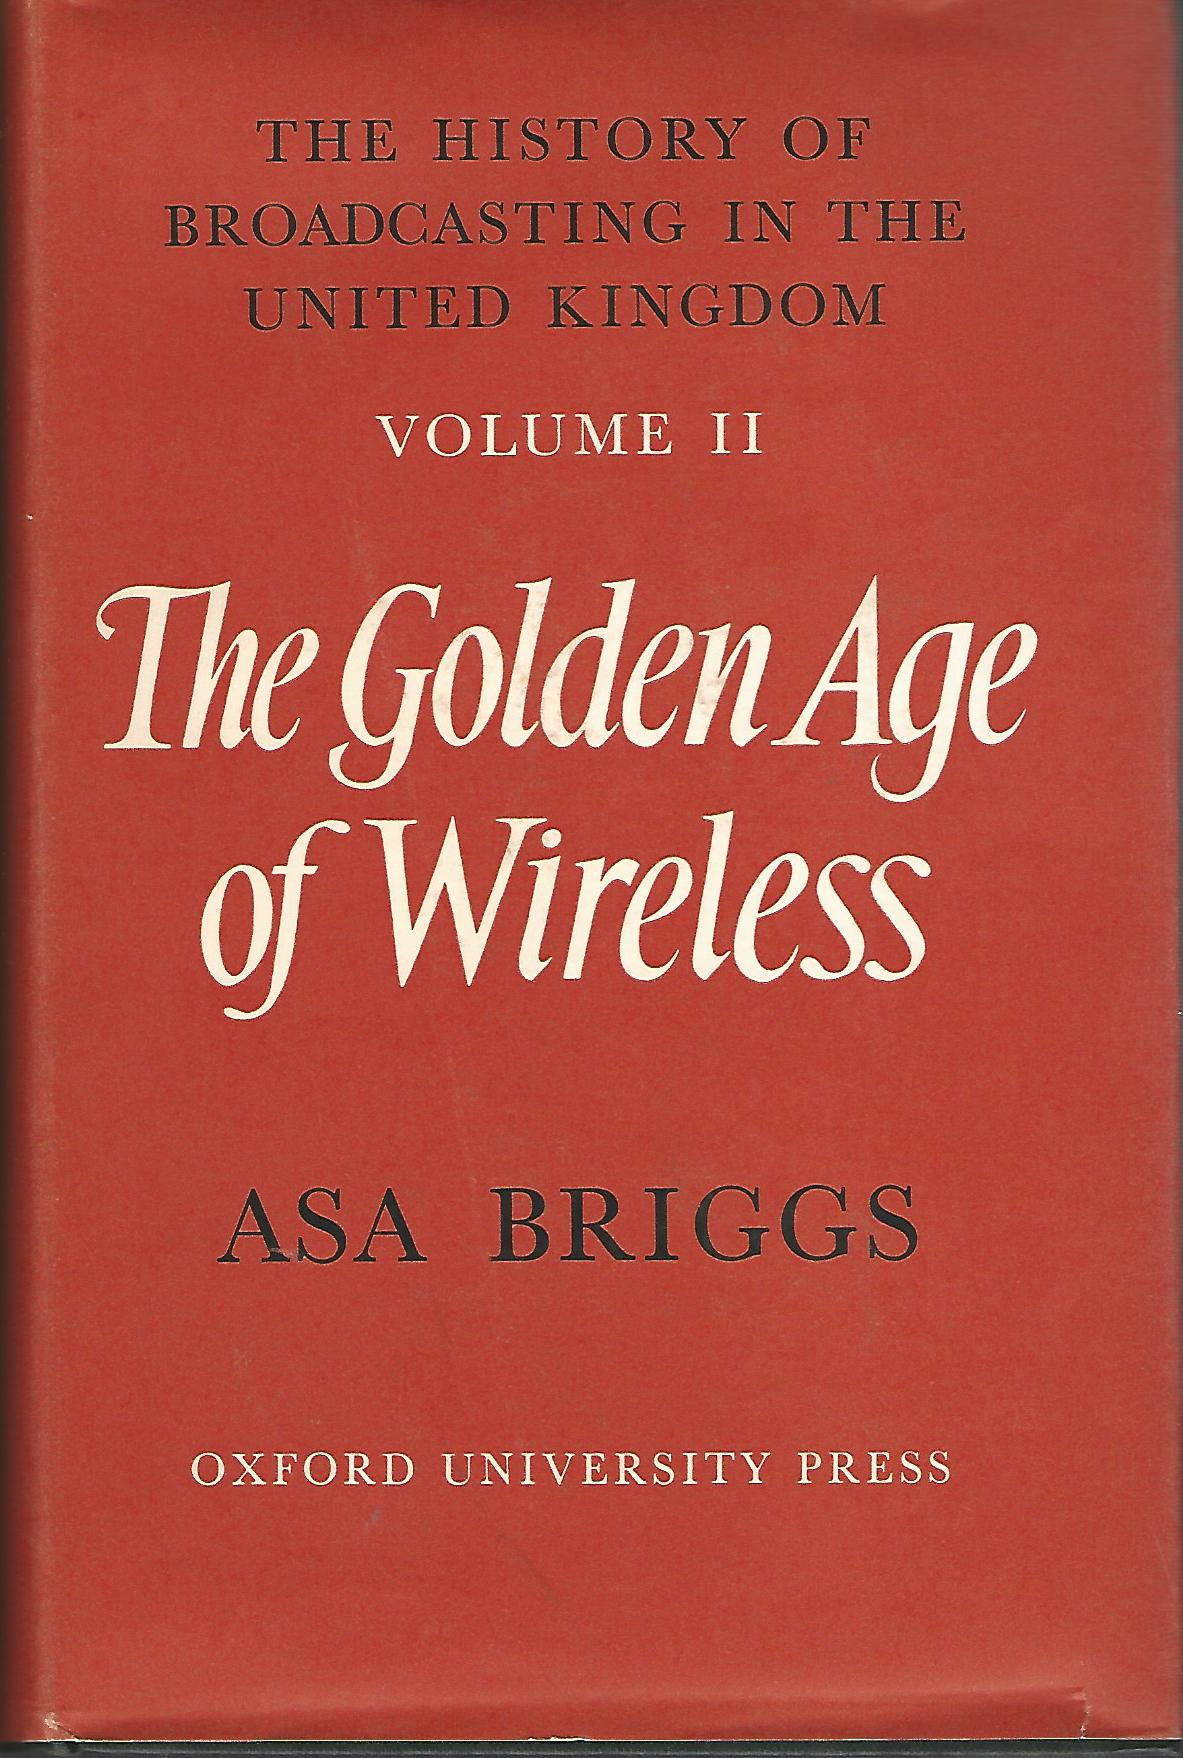 Image for The History of Broadcasting in the United Kingdom Volume 2: The Golden Age of Wireless.